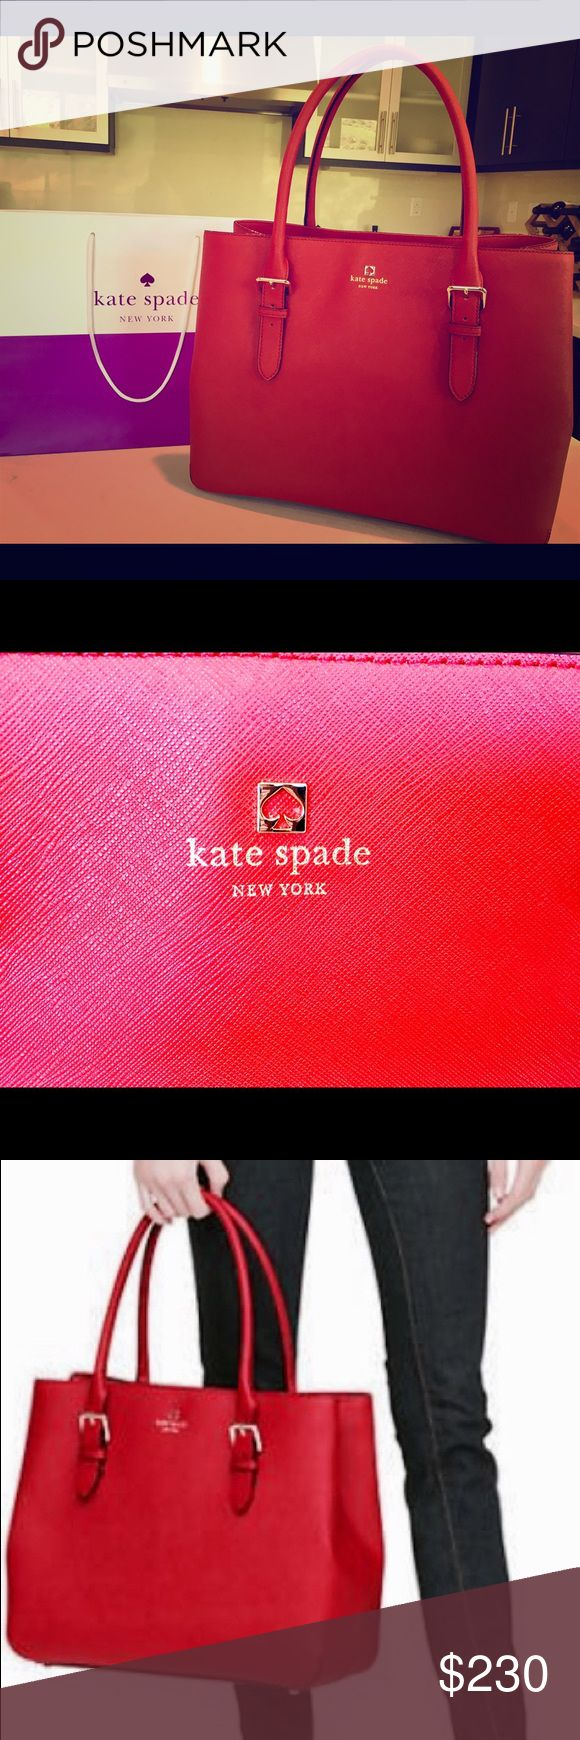 "Kate Spade cove street airel red Authentic Kate Spade cove street airel in pillow box red. Cross hatched leather with matching trim. Custom woven lining with 14-karat light gold plated hardware. Style #: WKRU2326. Adjustable shoulder straps with dividing zipper pocket, double slide pockets and interior zipper pocket. 11.9""h x 15""w x 6.2""d, drop length: 8.26""  SOLD OUT on Kate Spade ♠️ online shop. Amazon is selling for $349.99. Perfect Valentine's 🎁 💕❣️ kate spade Bags Totes"